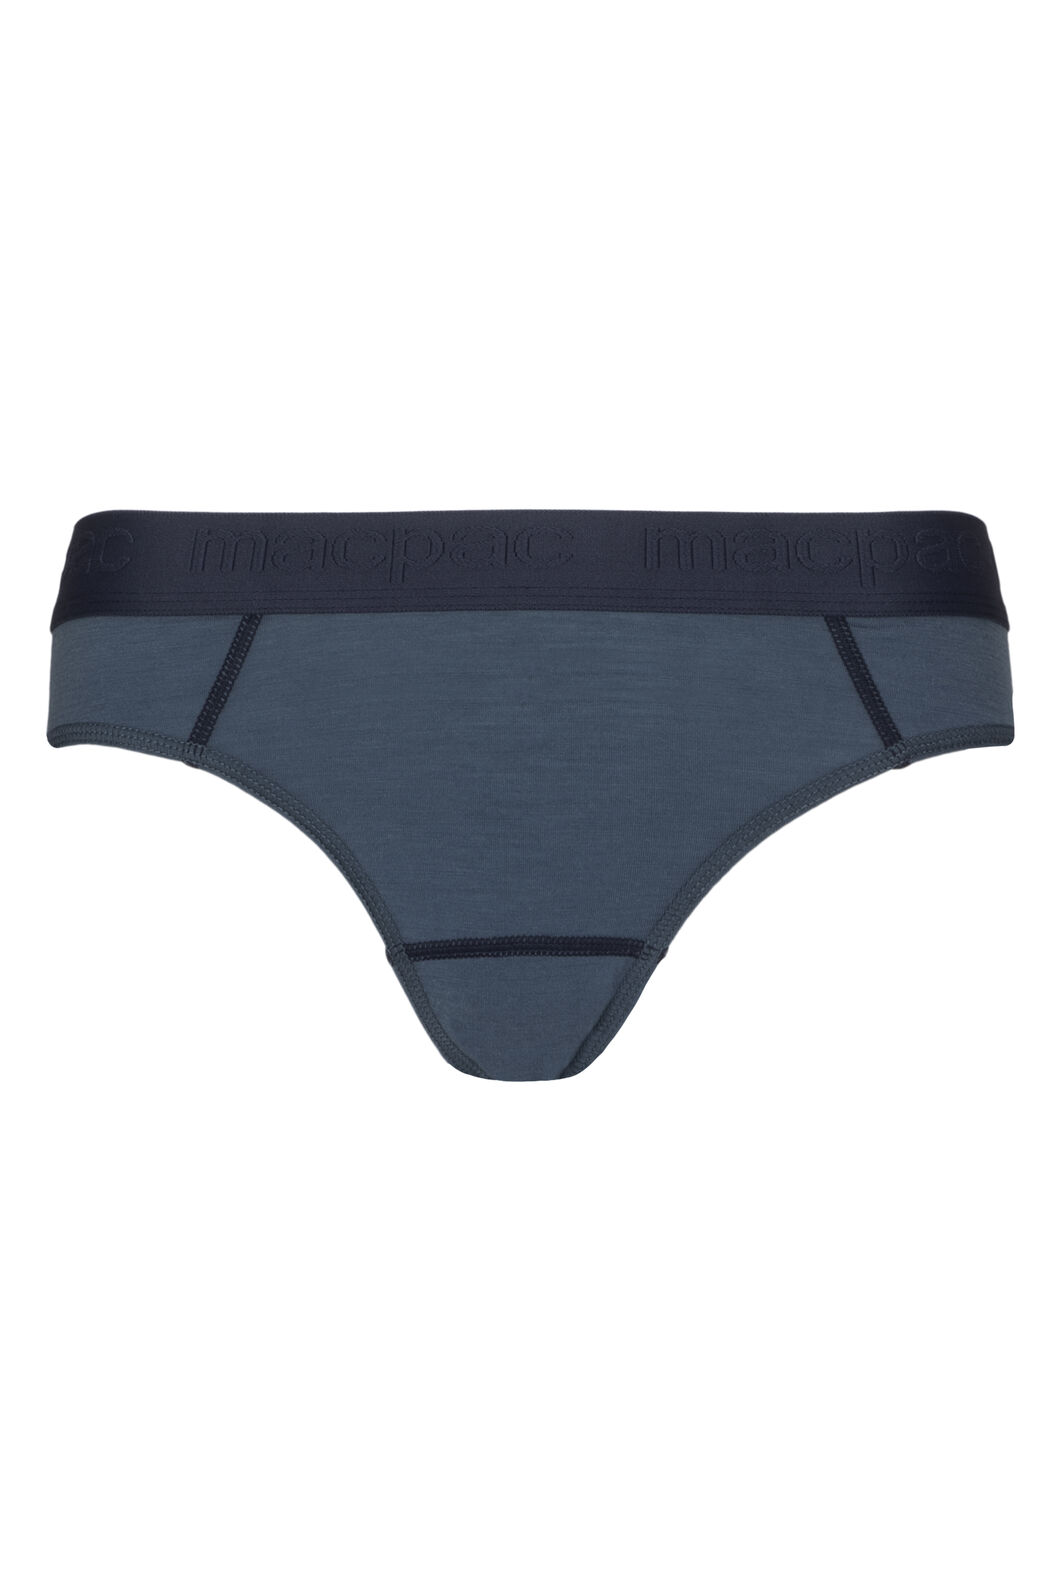 Macpac 180 Merino Brief — Women's, Orion Blue, hi-res